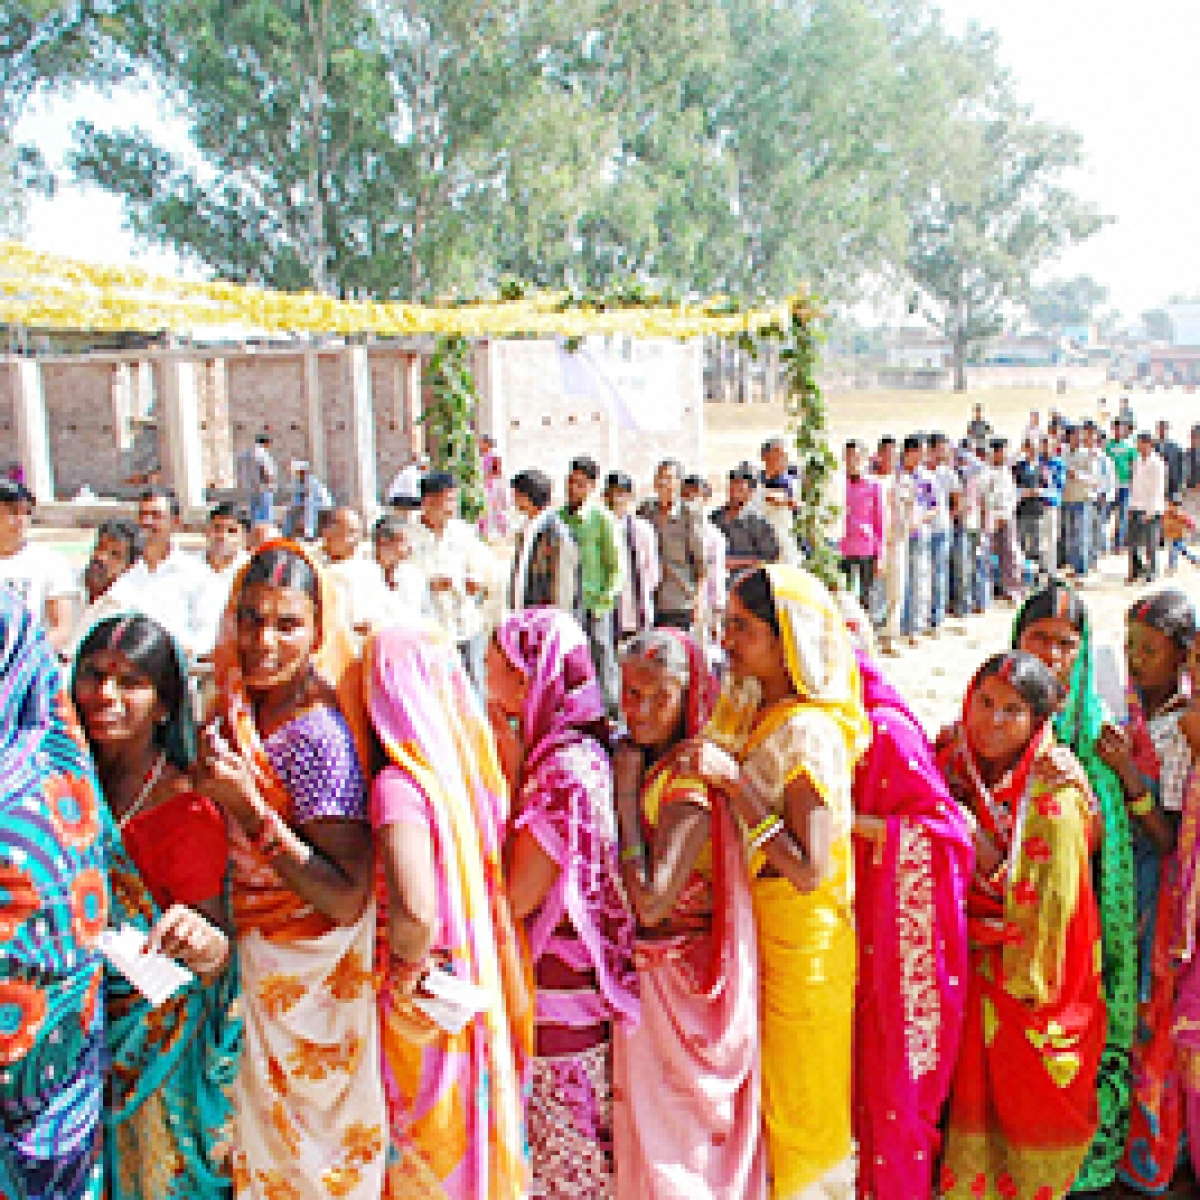 Jharkhand presents itself as a knotty electorate for the BJP